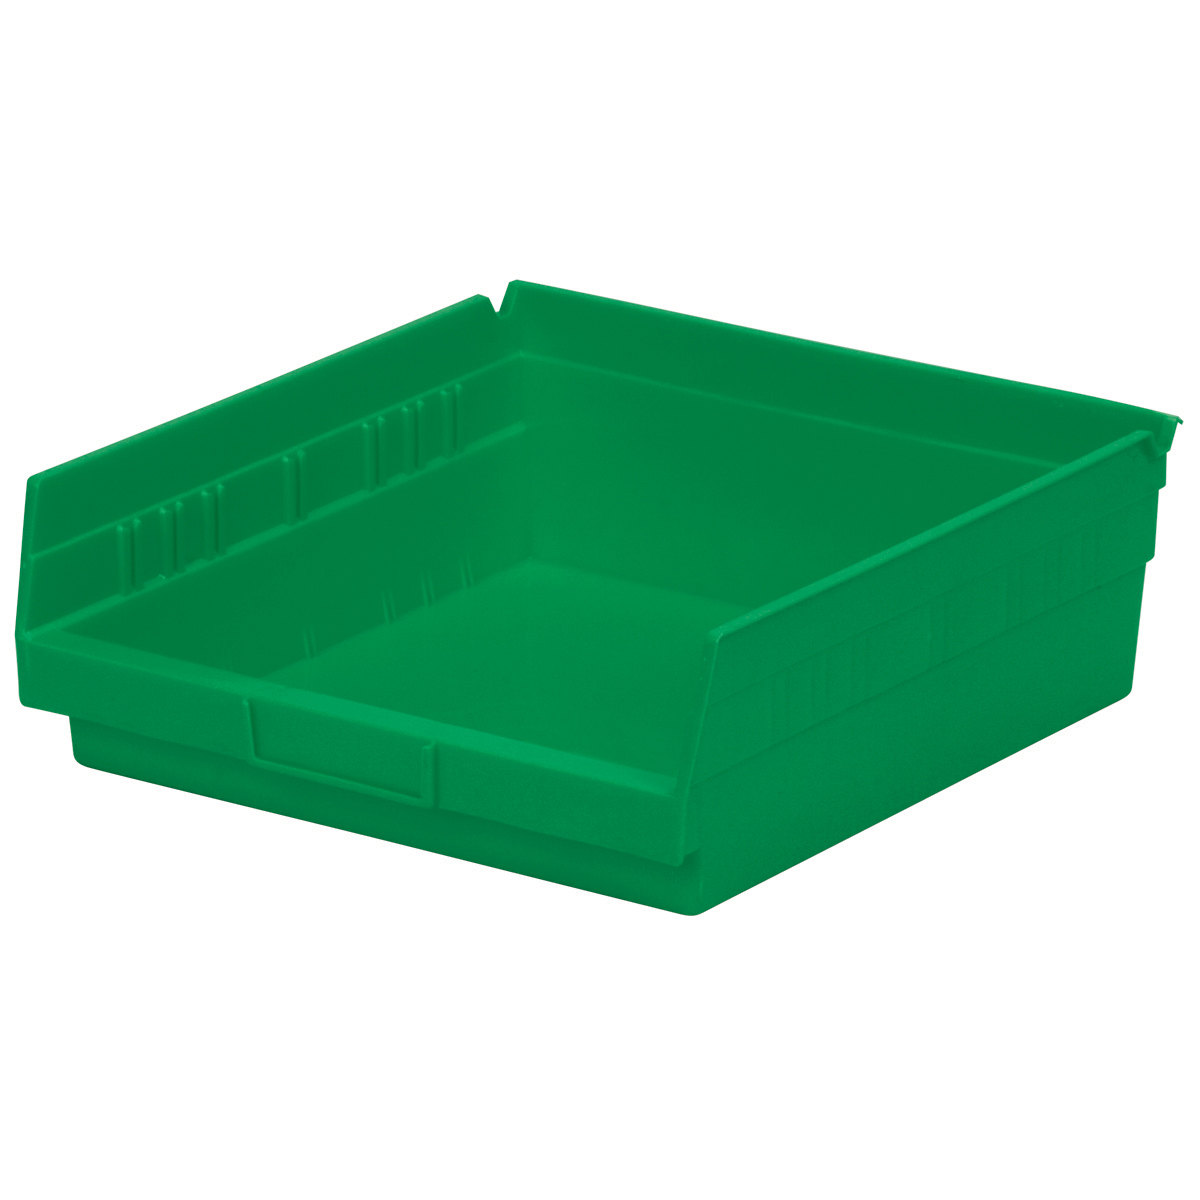 Shelf Bin 11-5/8 x 11-1/8 x 4, Green (30170GREEN).  This item sold in carton quantities of 12.